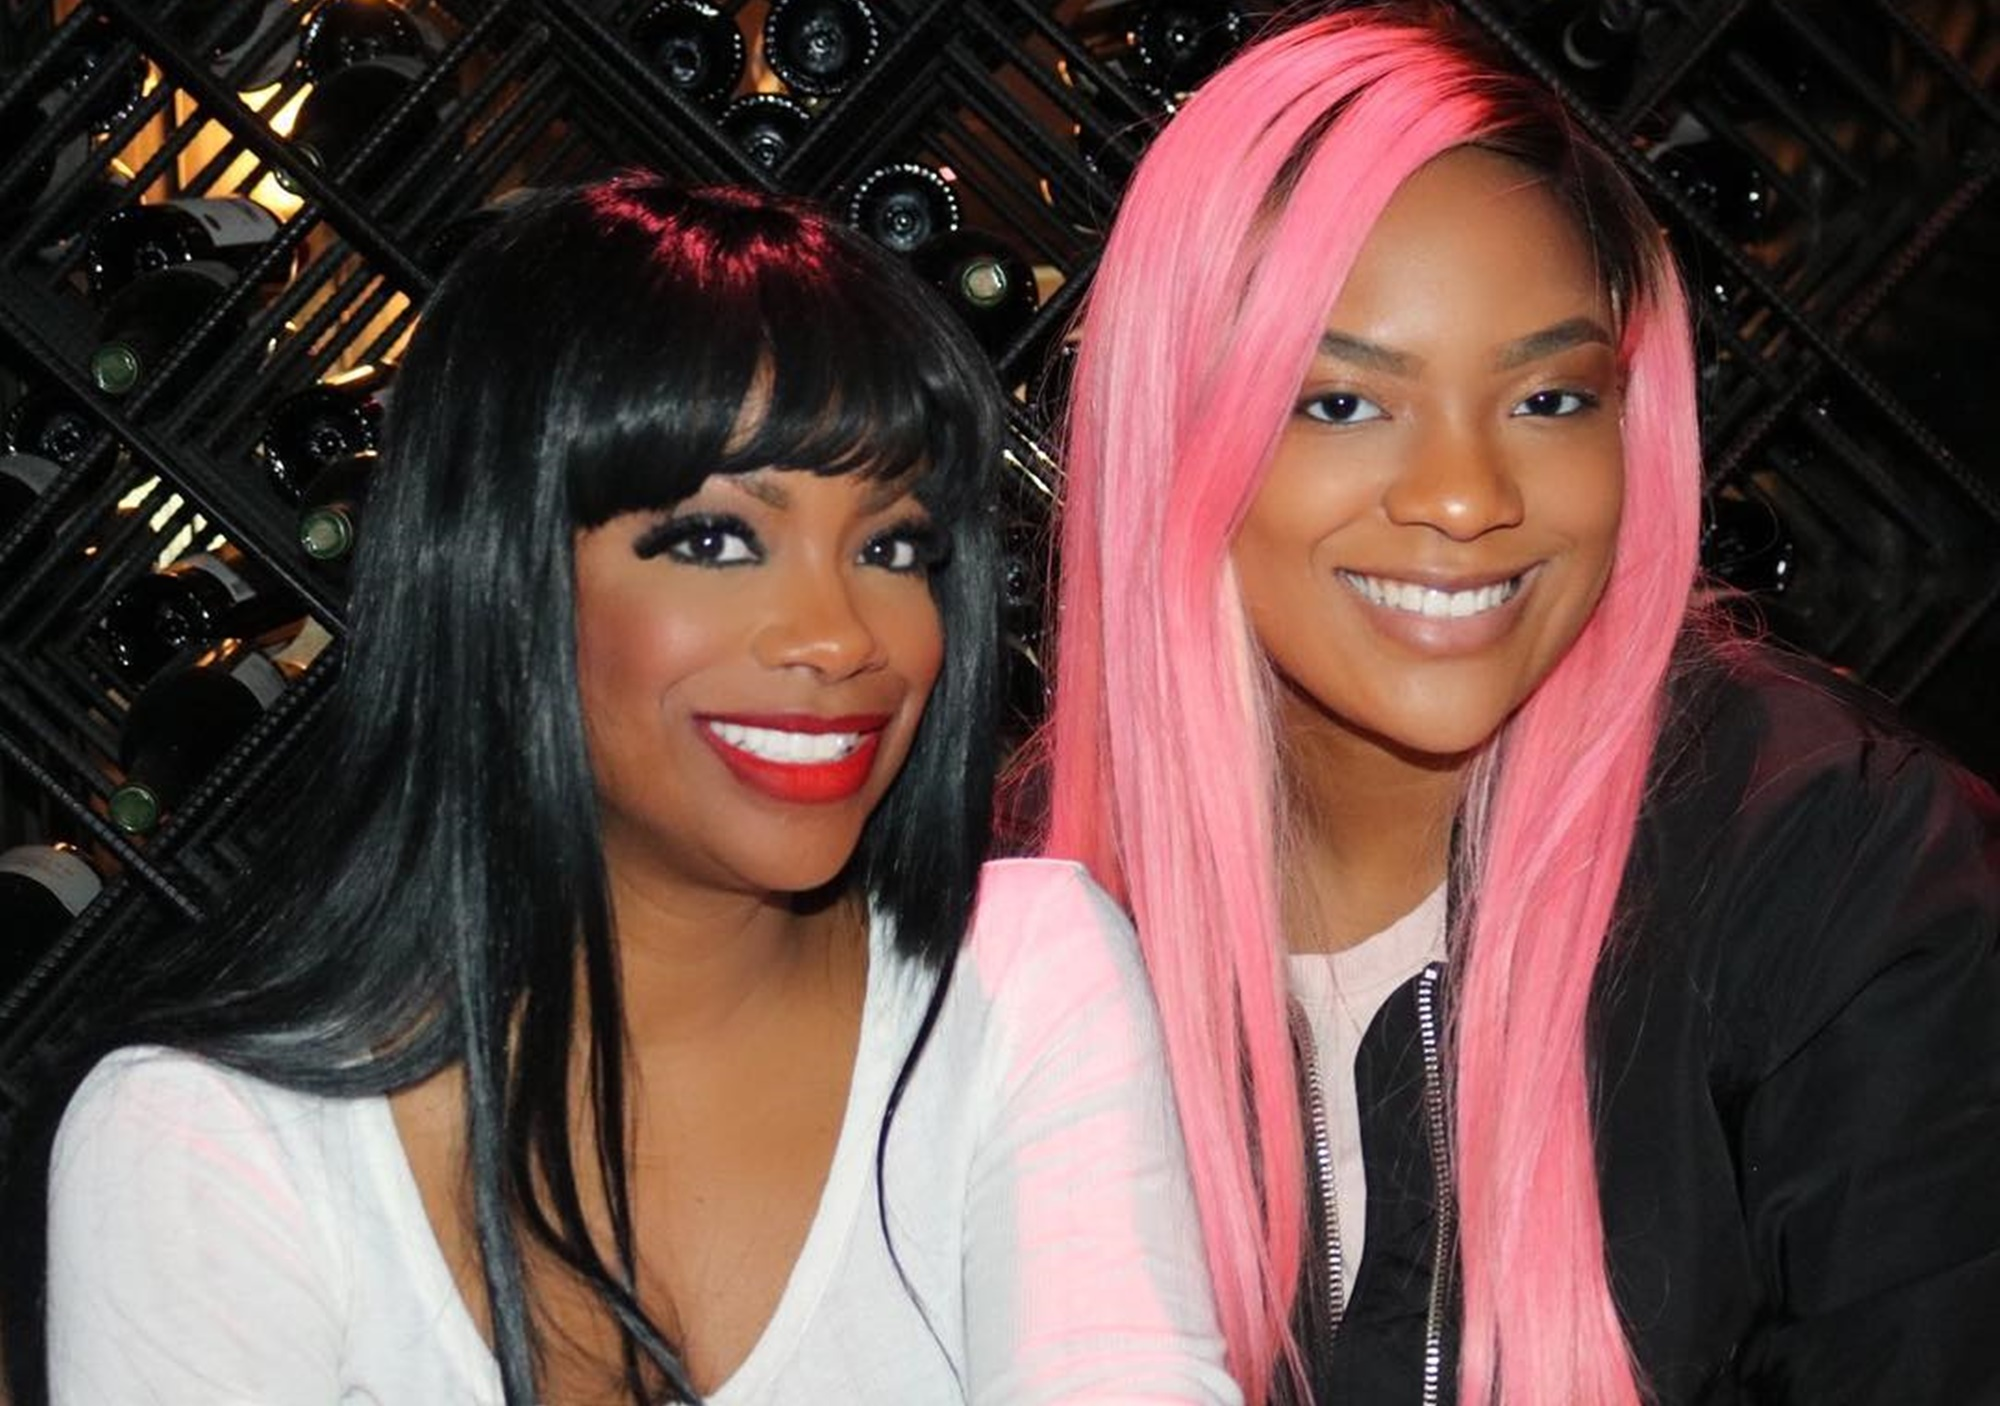 Kandi Burruss' Daughter Freaks Out That Riley Burruss Will Be In NYC For The Summer - Watch The Video Of The First Internship Day